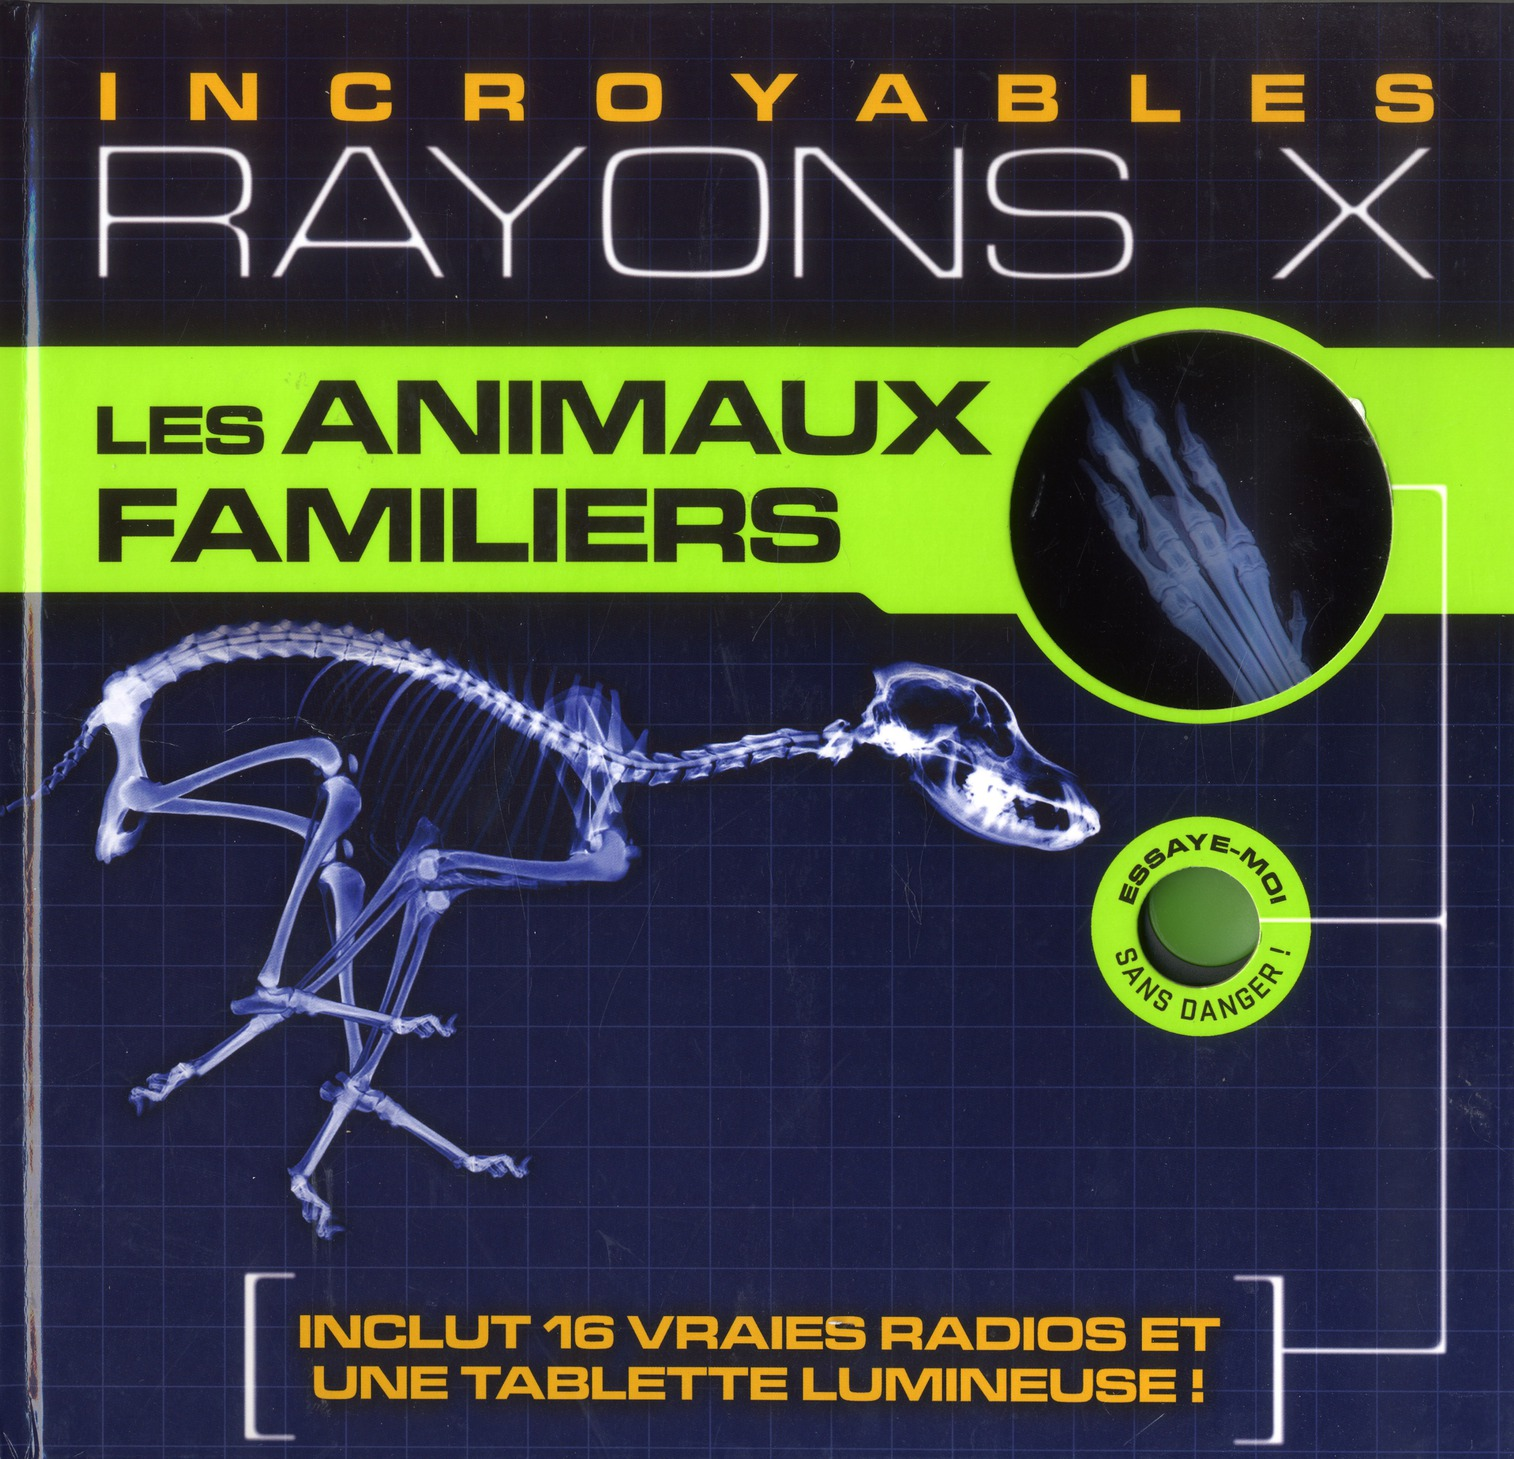 Fabuleux Rayons X ; Les Animaux Familiers